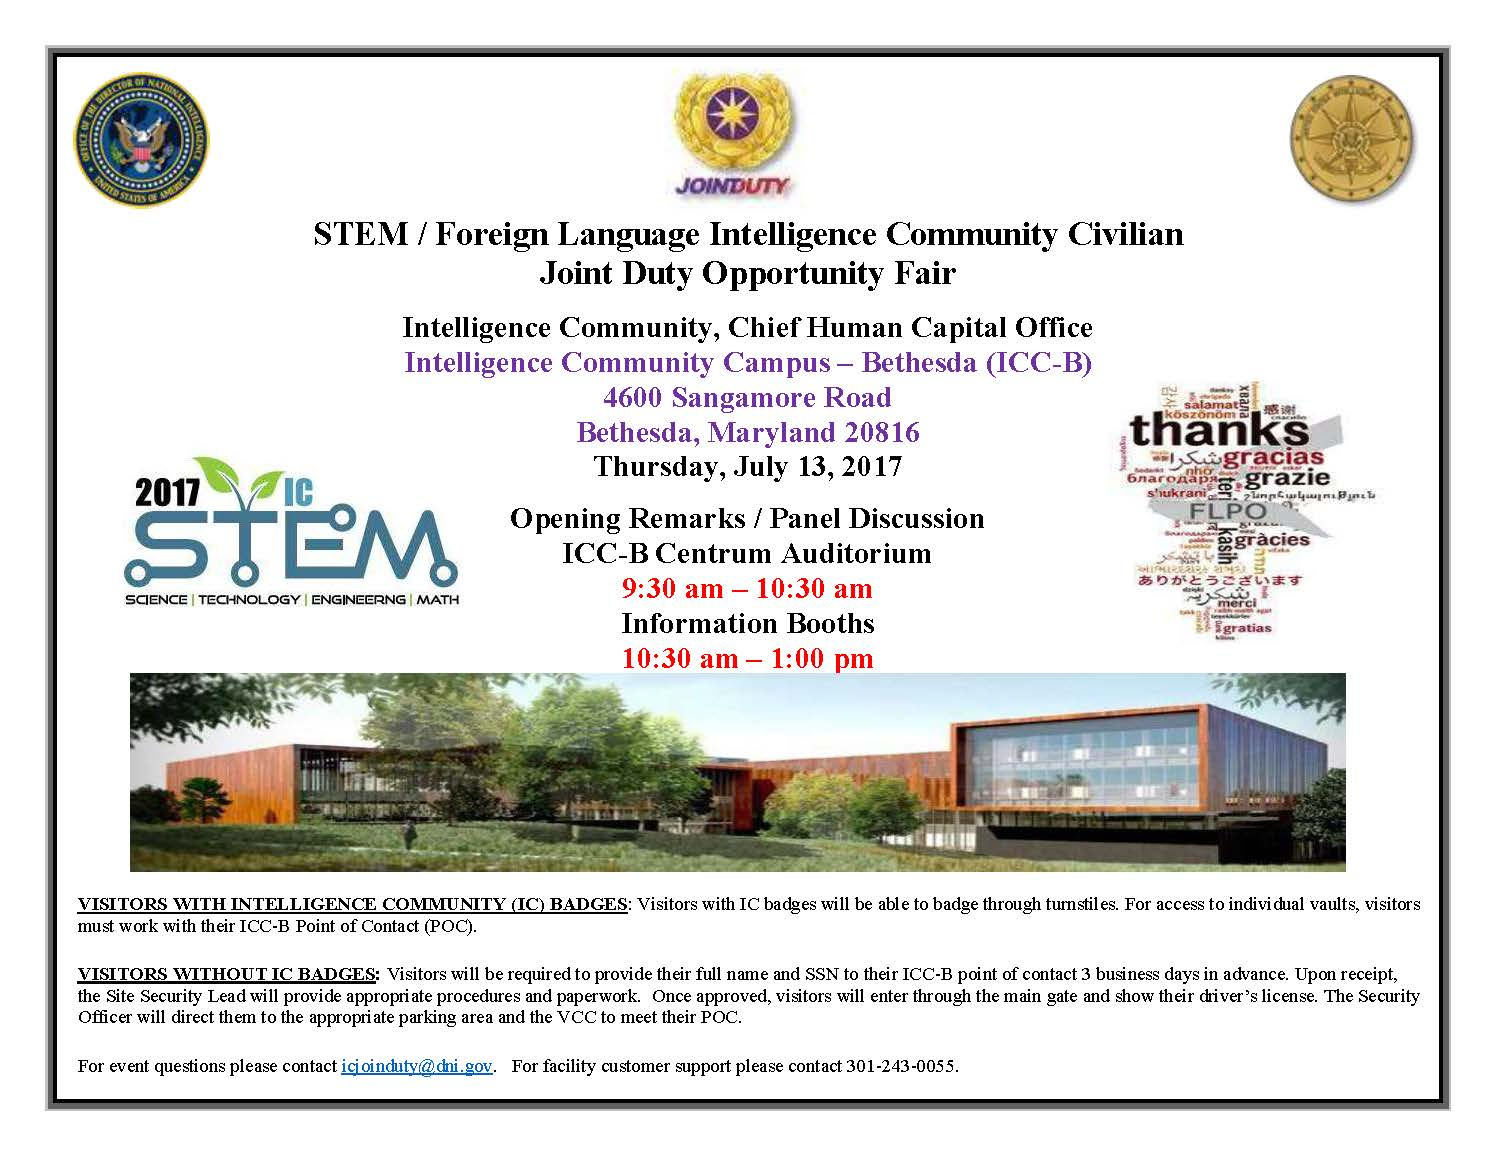 STEM/Foreign Language Intelligence Community Civilian Joint Duty Opportunity Fair